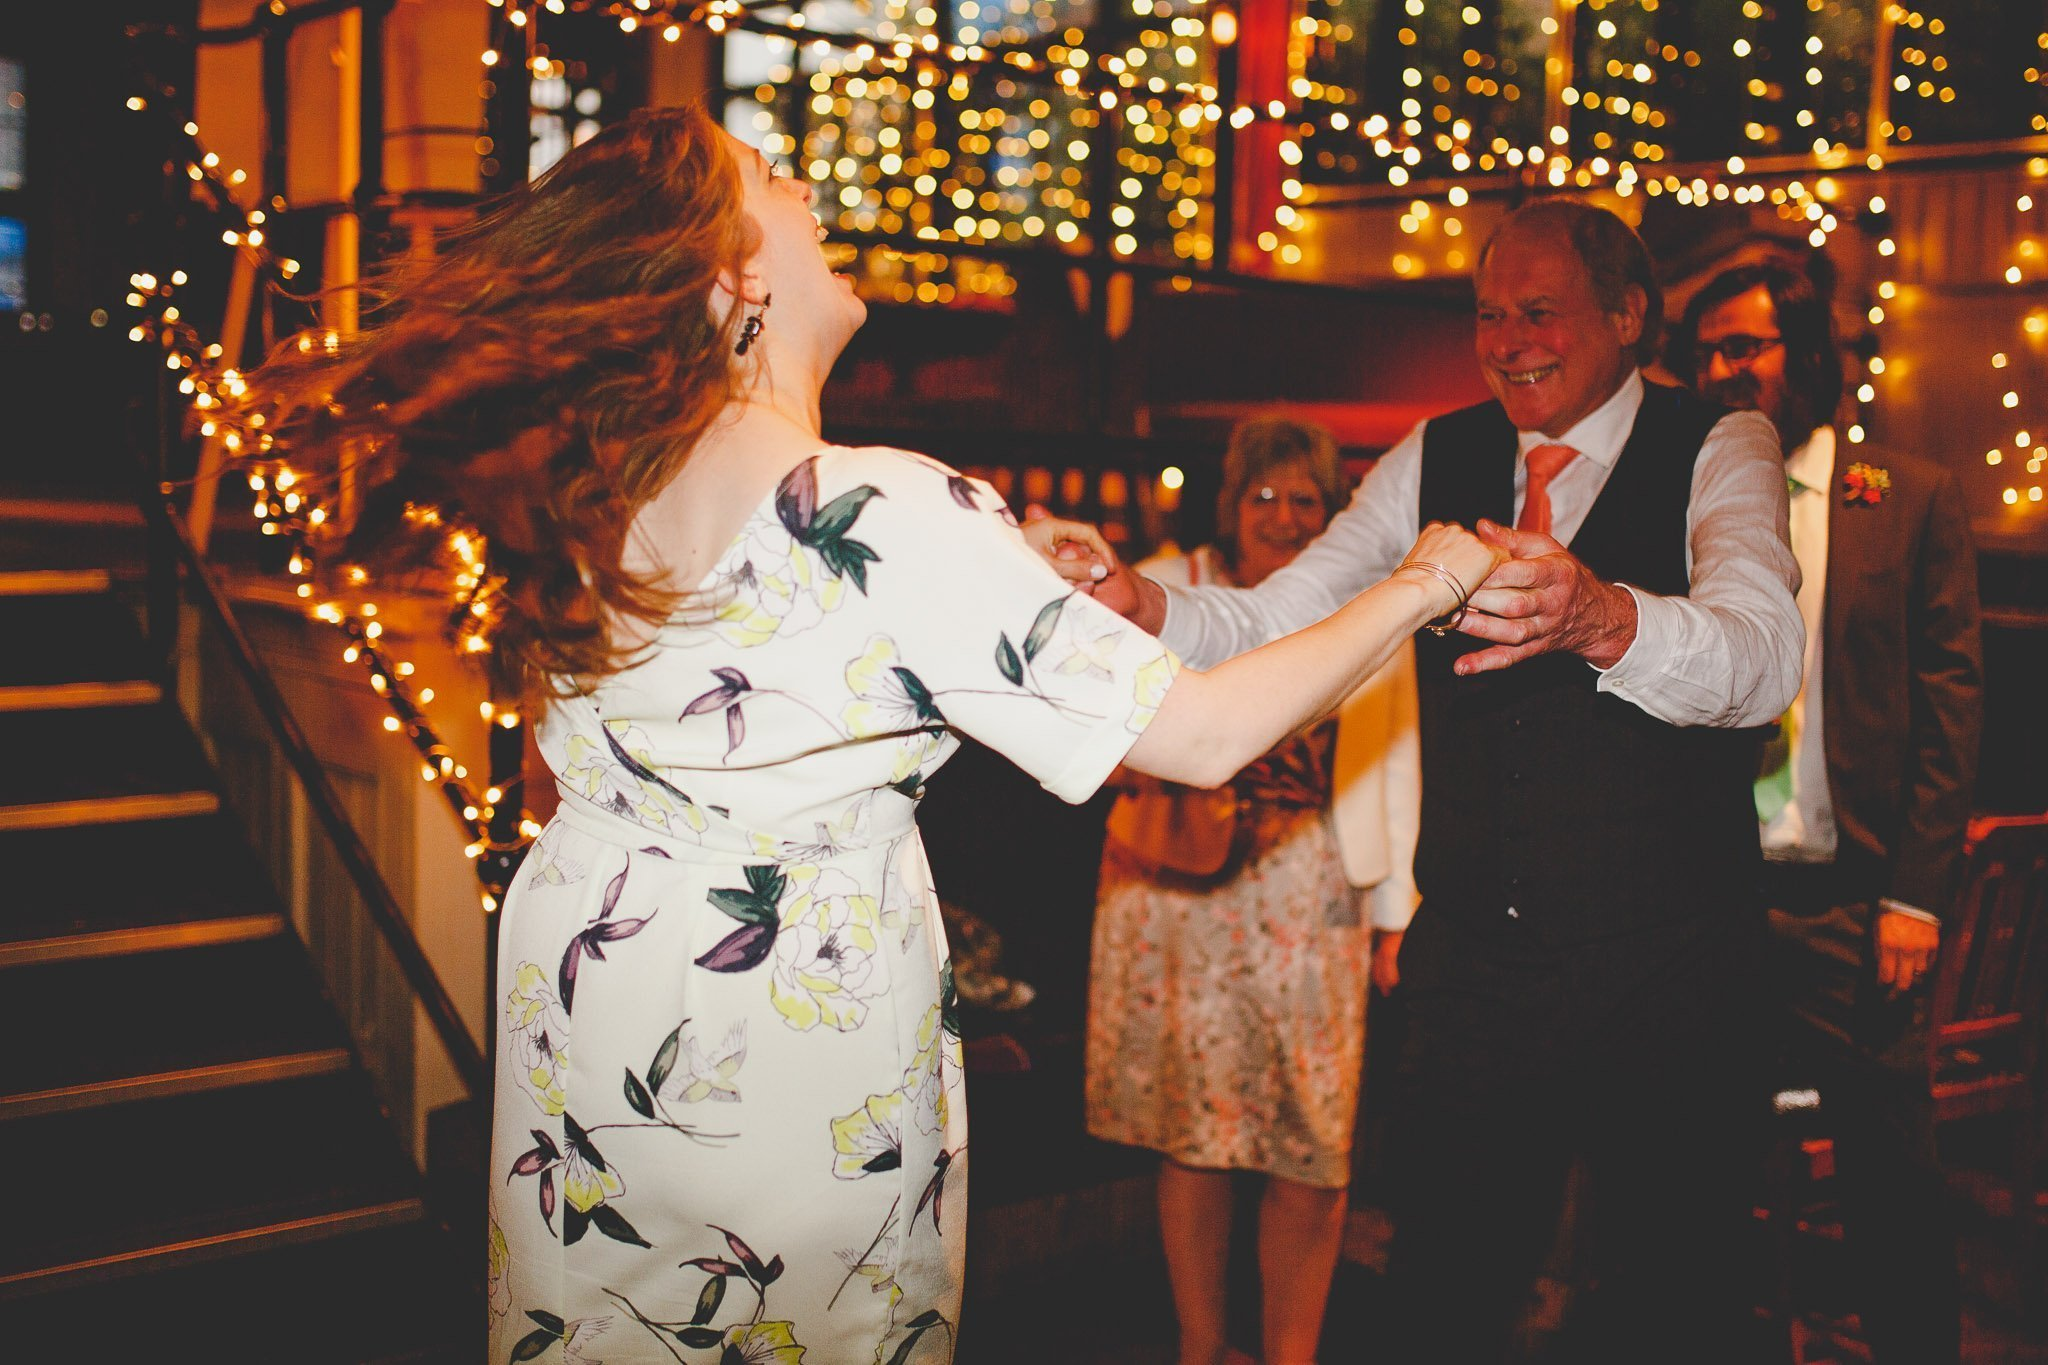 Father of the groom dances with a female wedding guest at The Depot bar in North London. Photography by thatthingyoupluck.